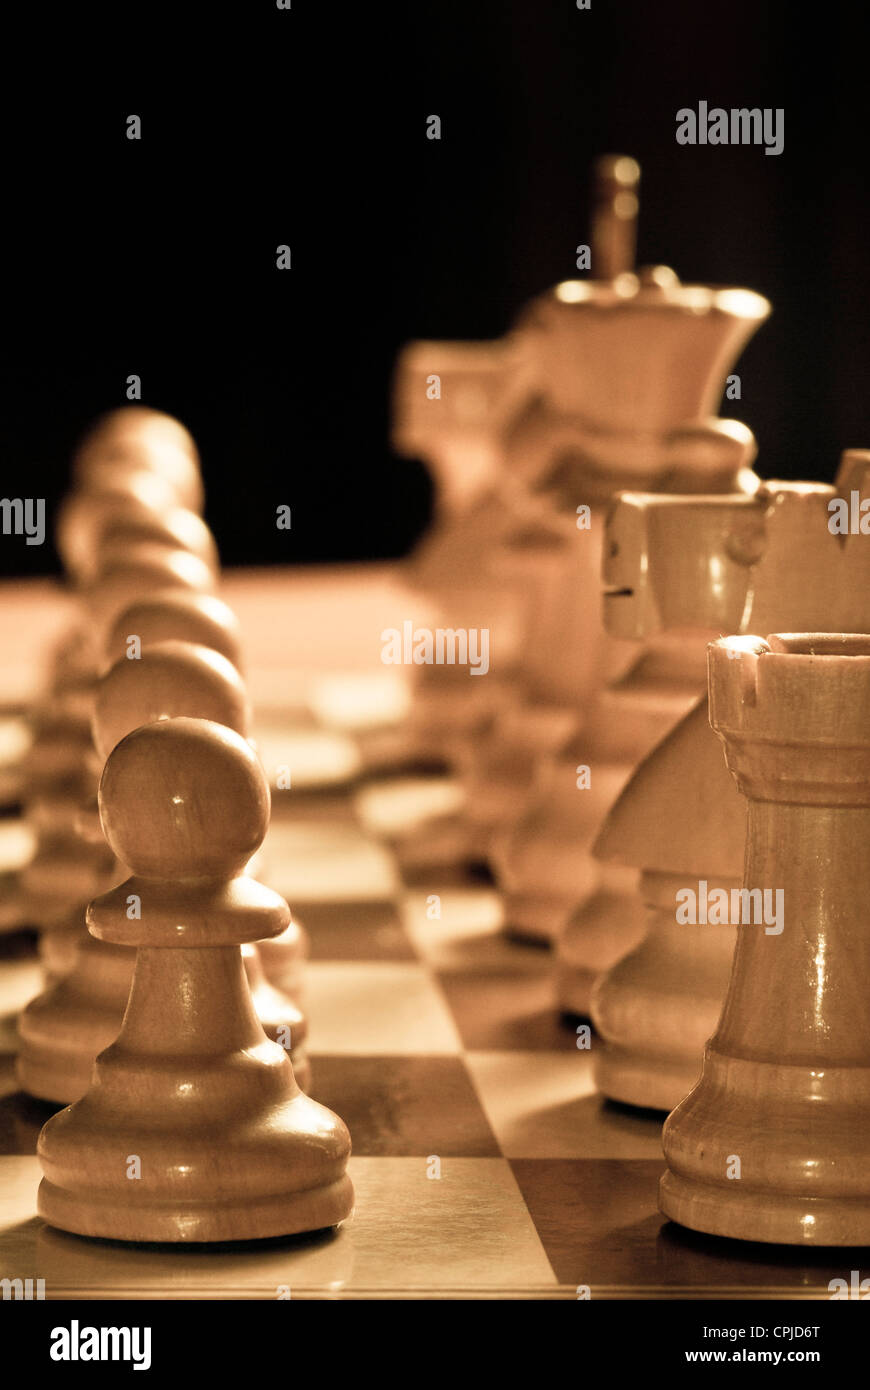 chess pieces on the chessboard Stock Photo